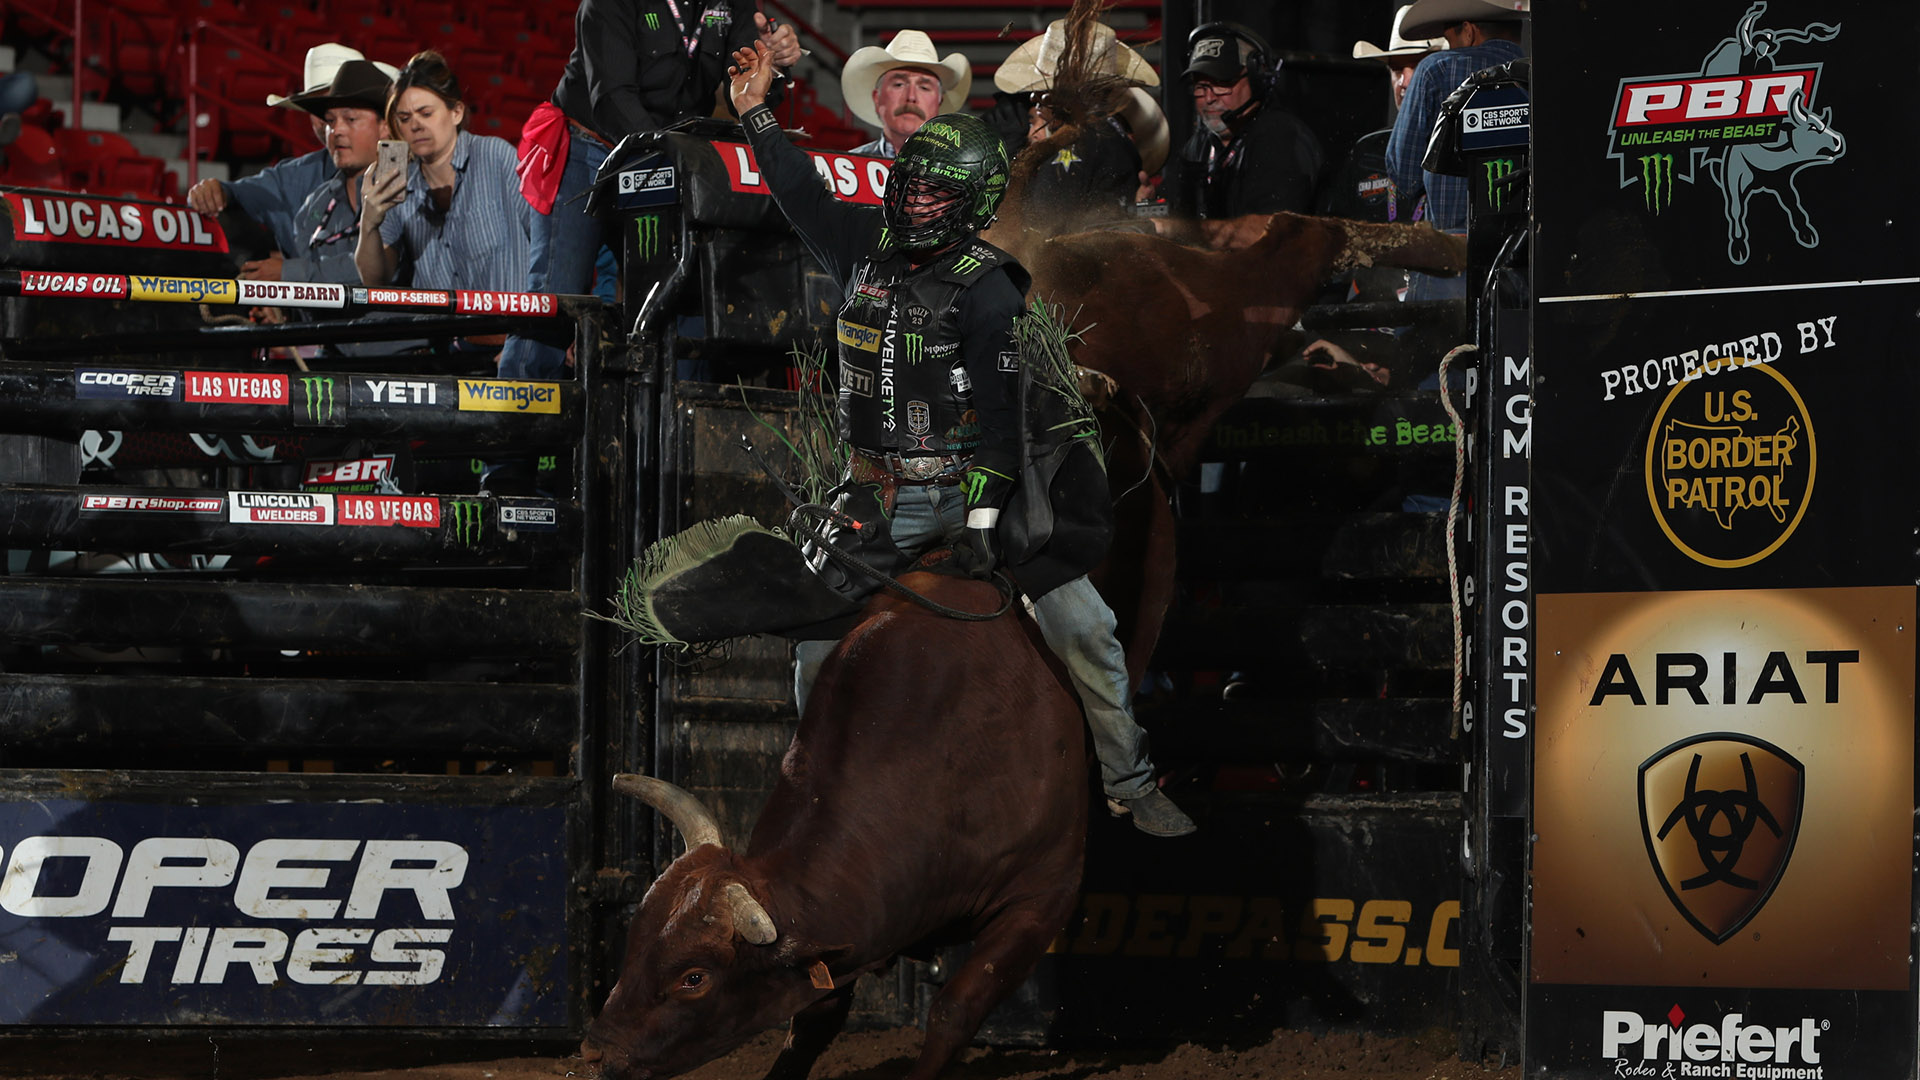 Outlaw: 'I ain't worried about it'